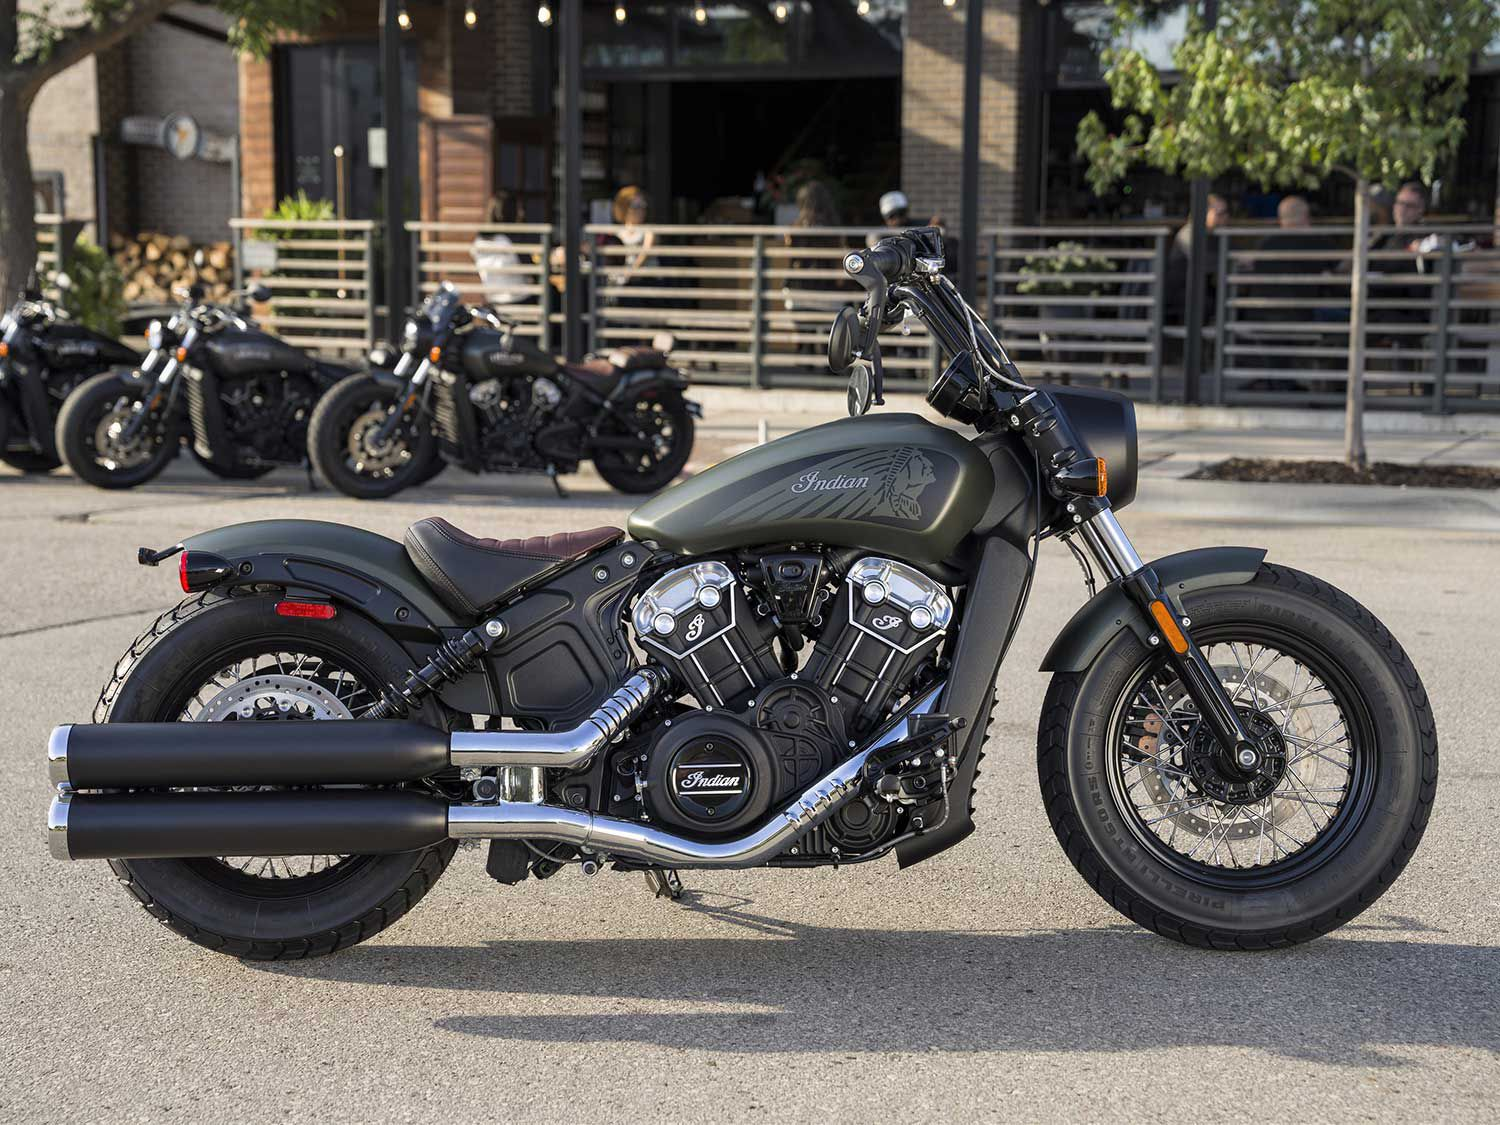 The Scout series is back mostly unchanged; here's the Scout Bobber Twenty wearing its new Sagebrush Smoke colorway for 2021. MSRP starts at $11,999; here, it's $13,399 (with ABS).